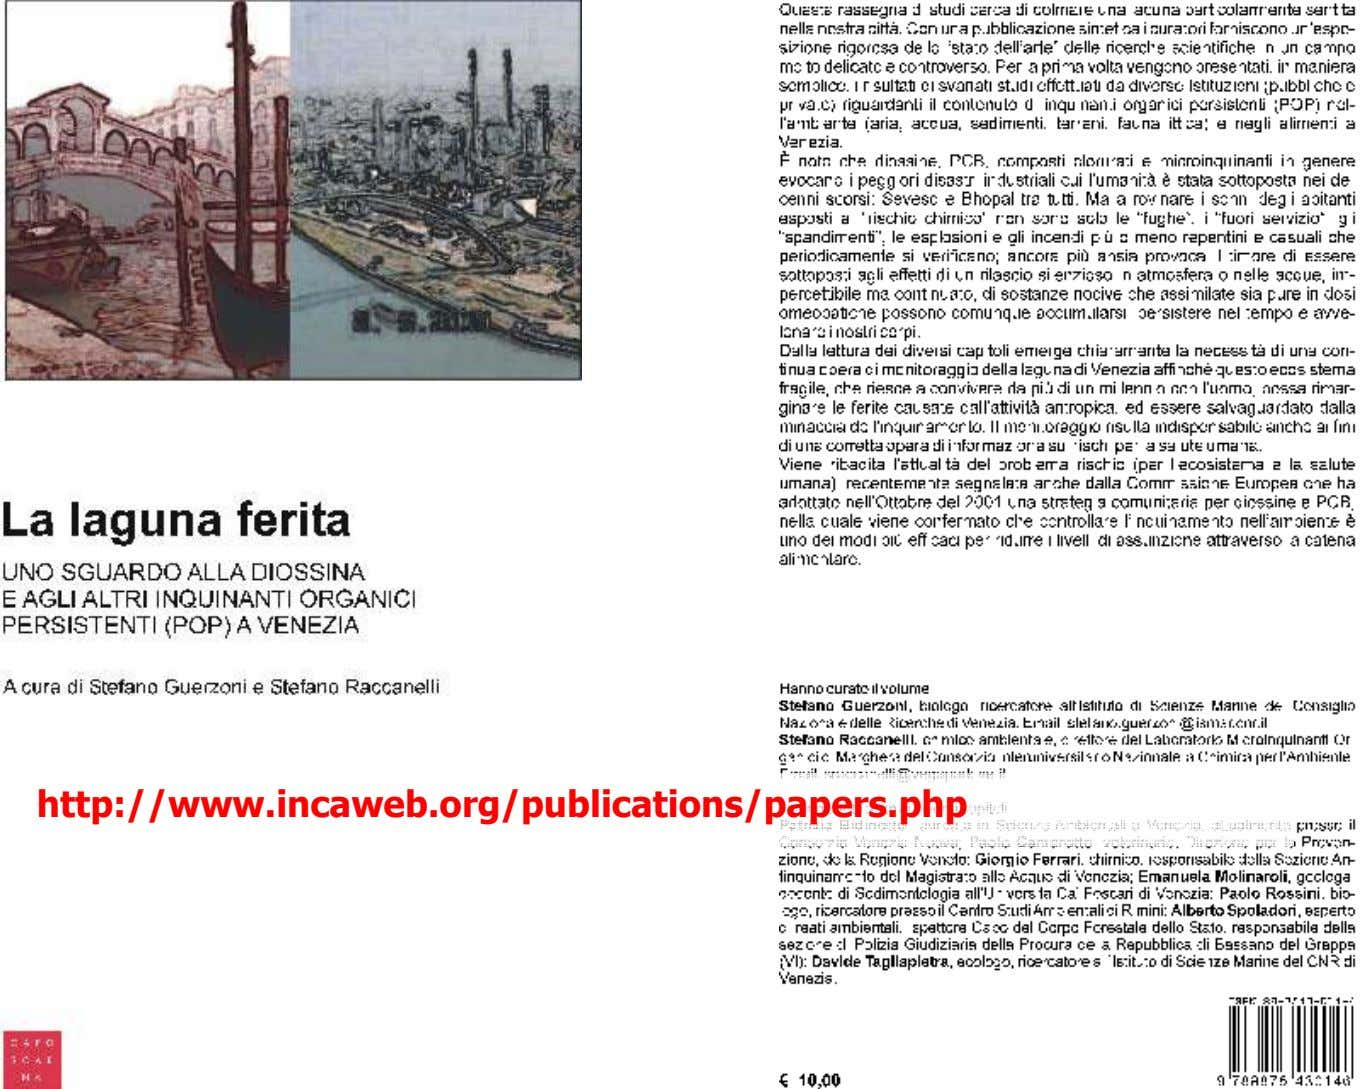 http://www.incaweb.org/publications/papers.php 31